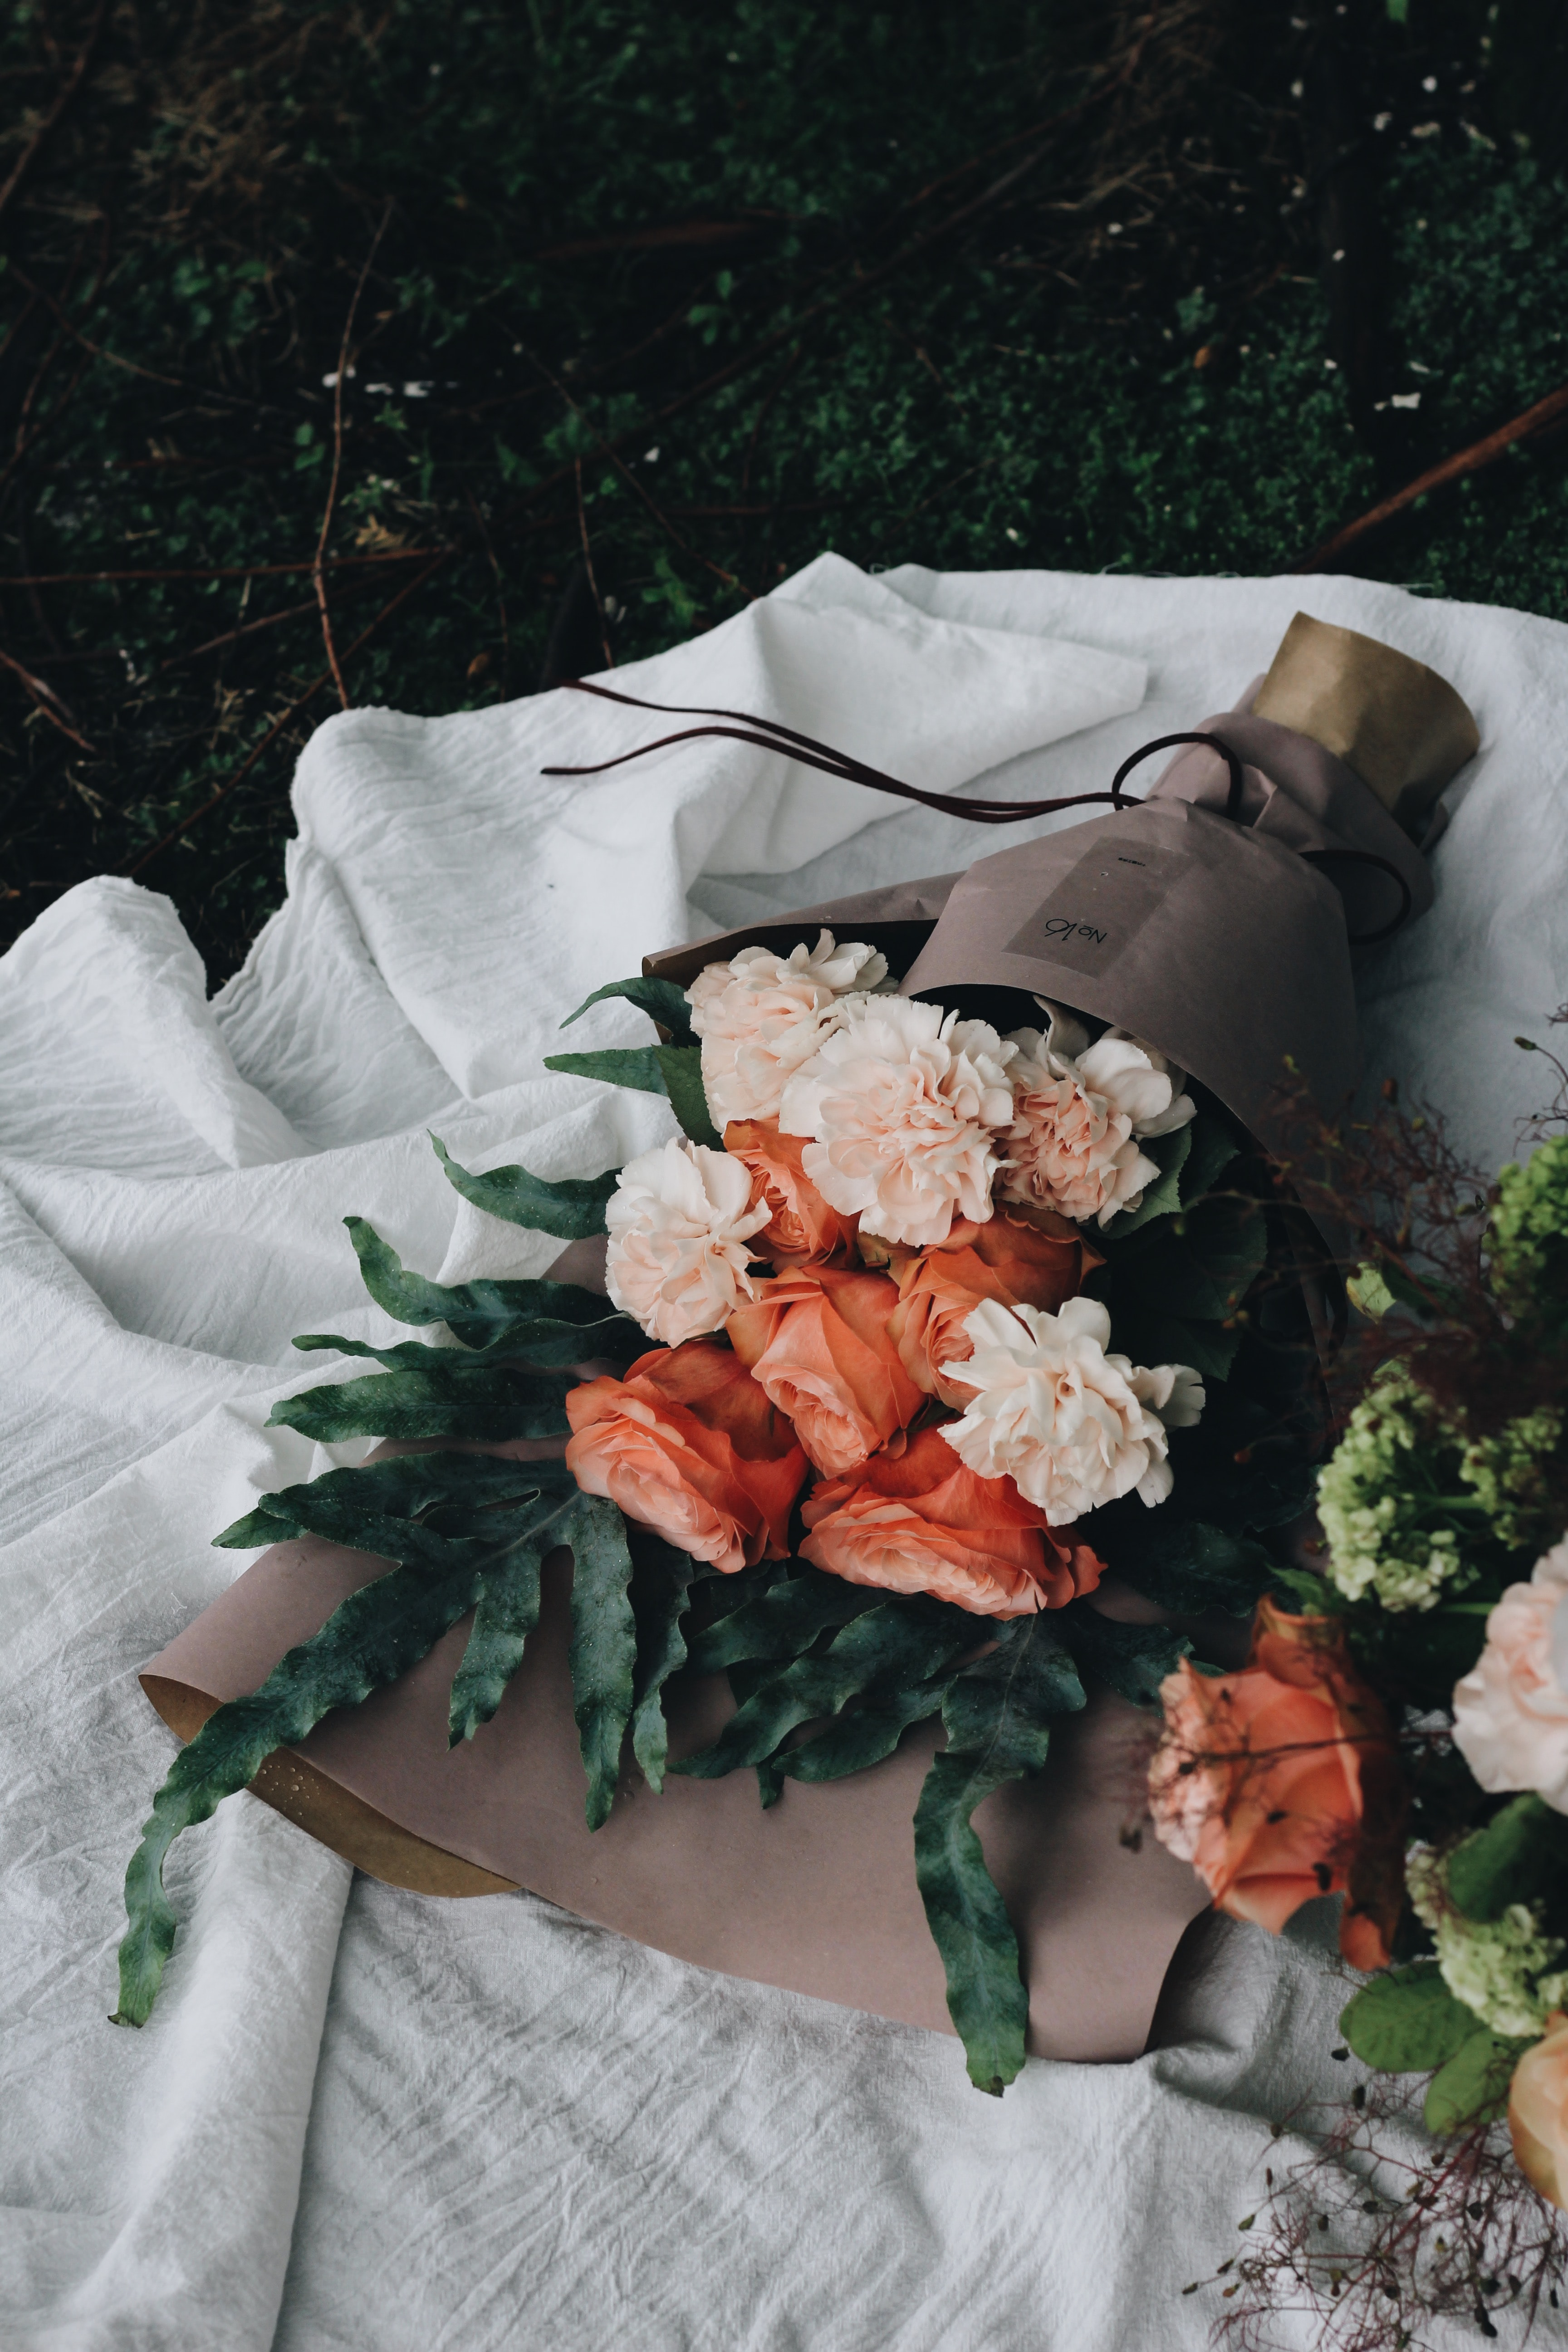 Large bouquets of pink carnations wrapped in paper and laid down on the ground